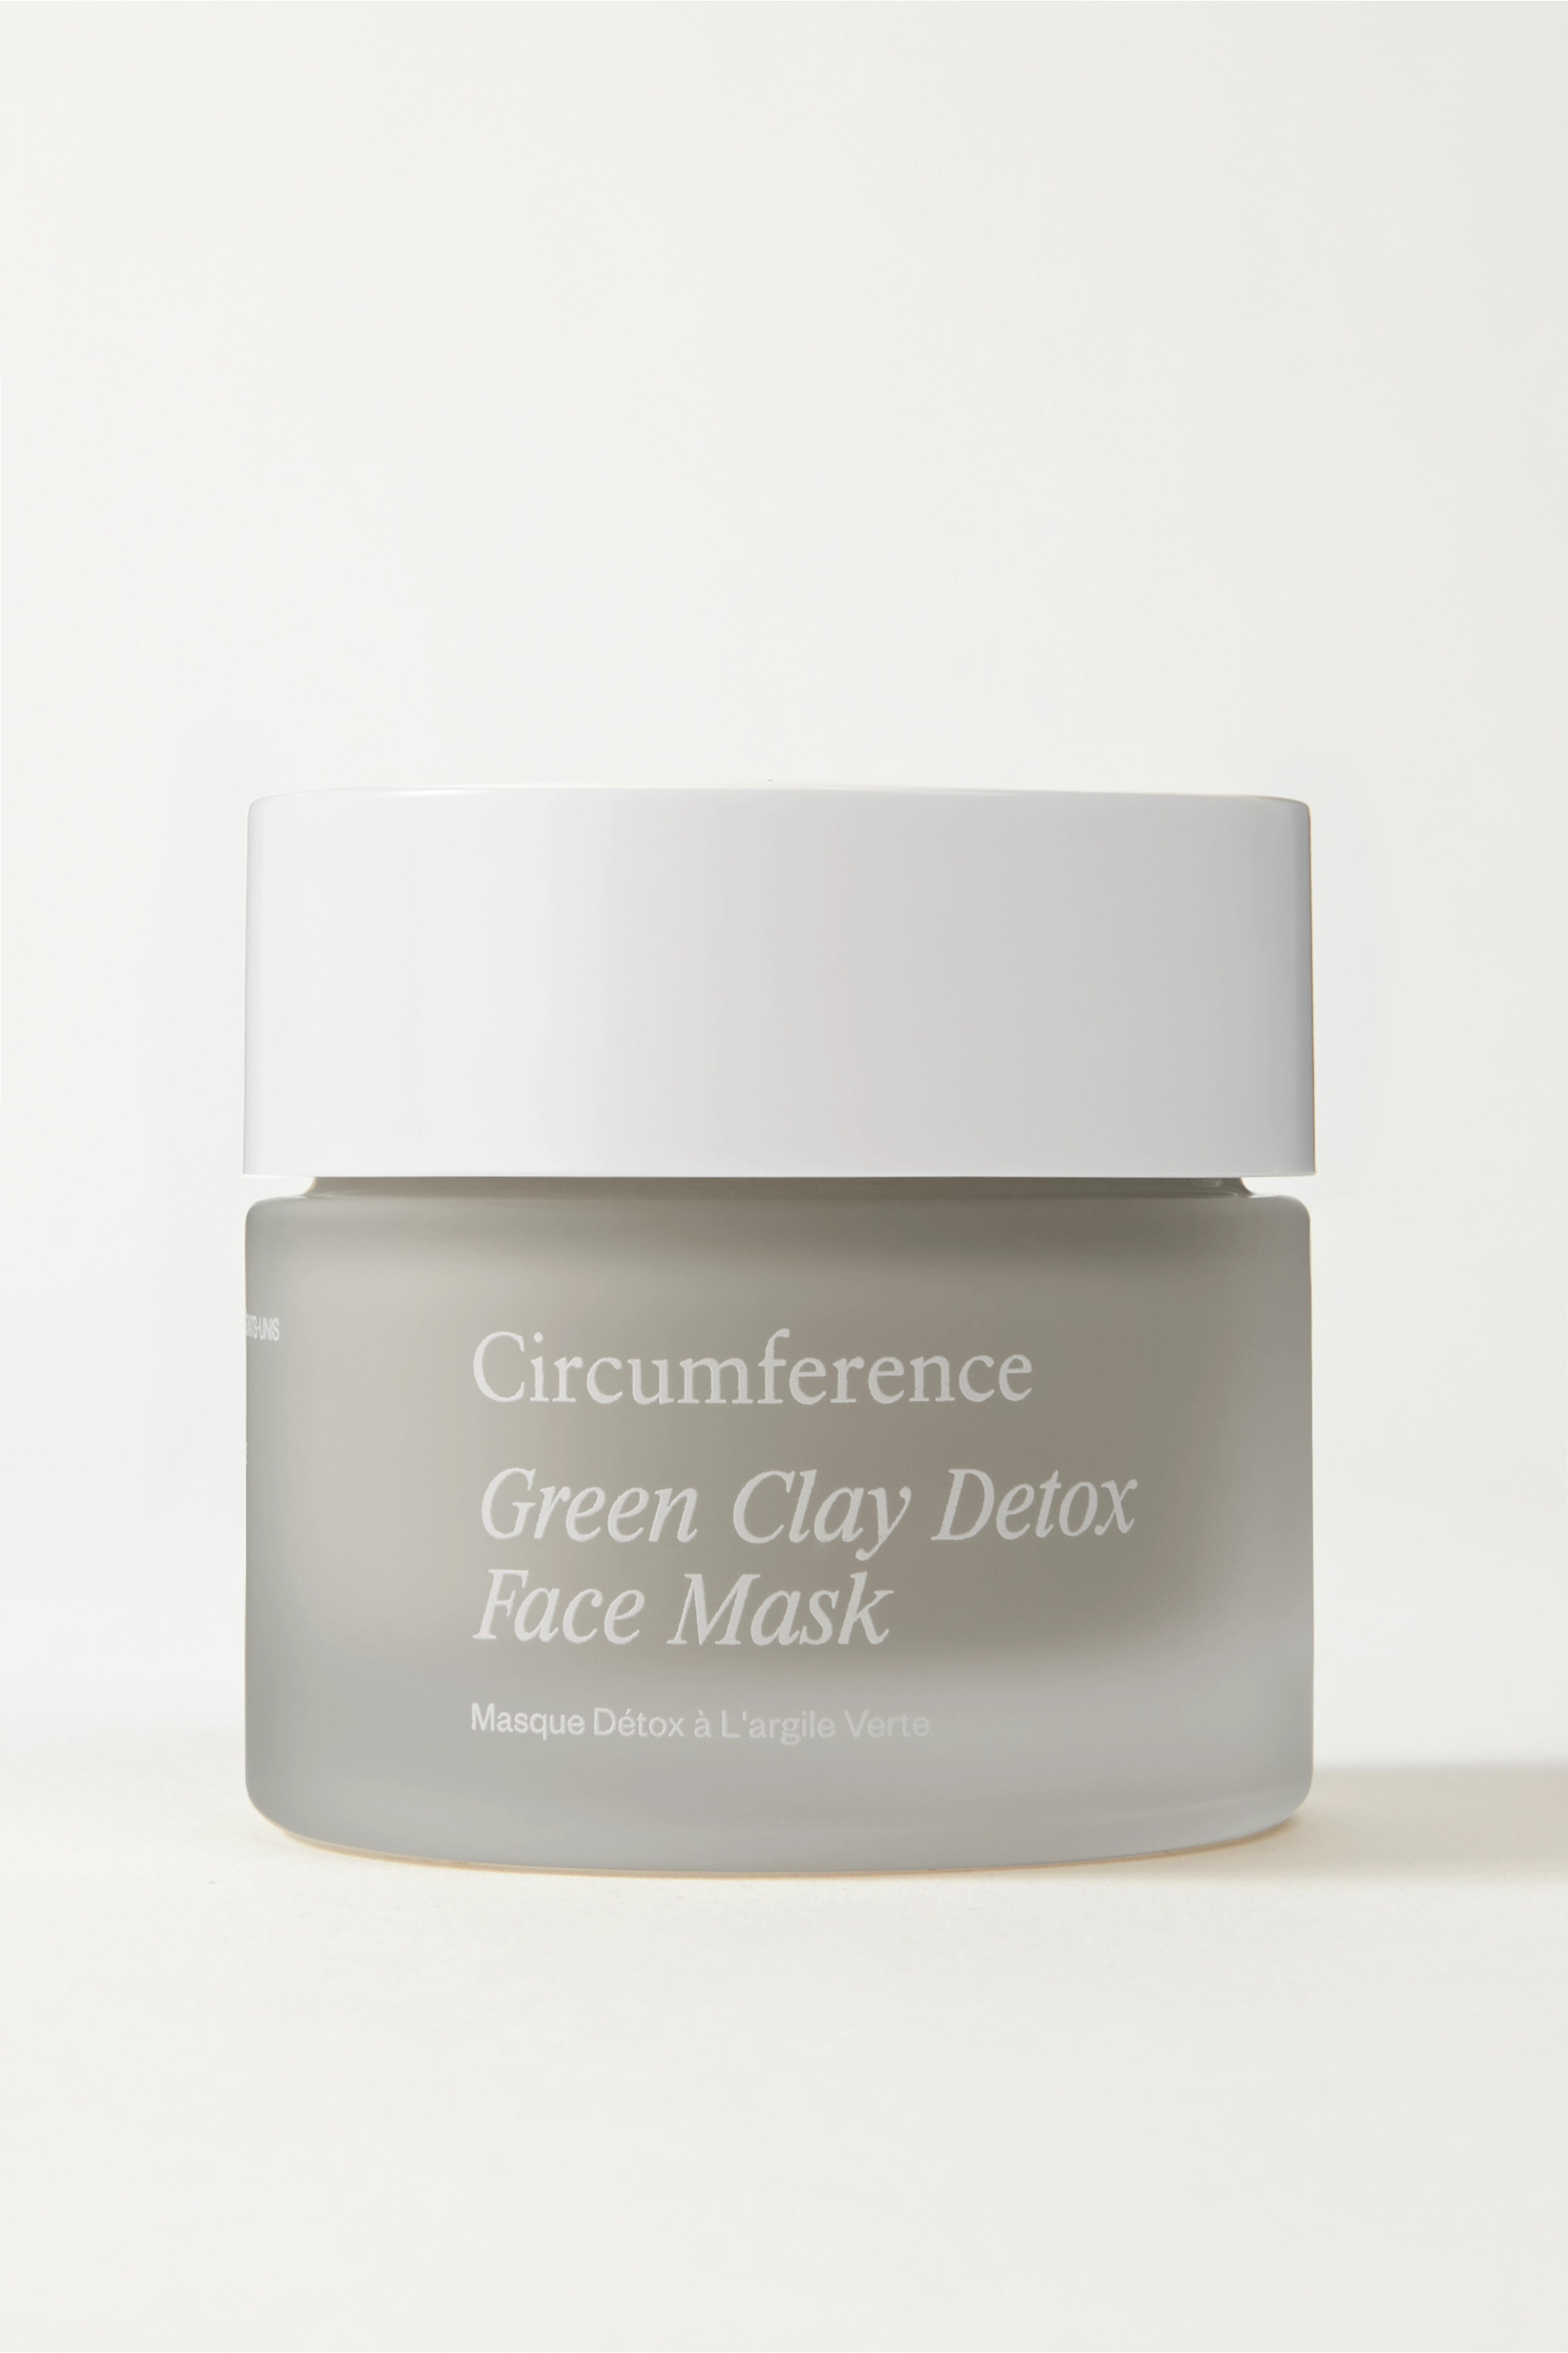 Circumference Green Clay Detox Face Mask, 50ml